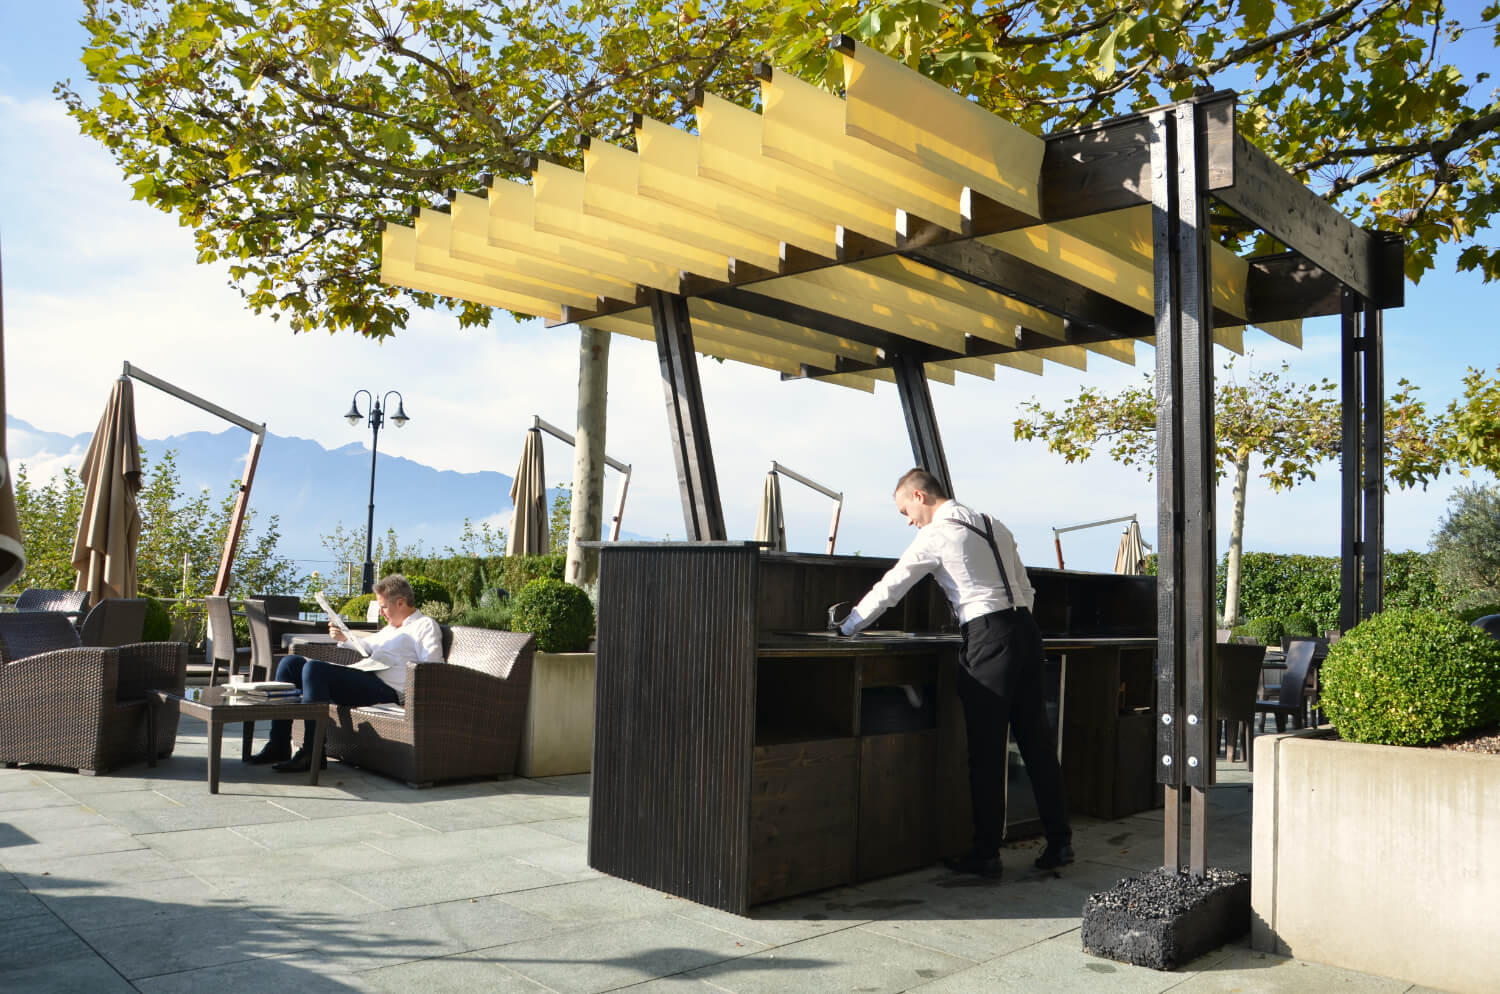 Pergola and pavilion are light structures made by Authos